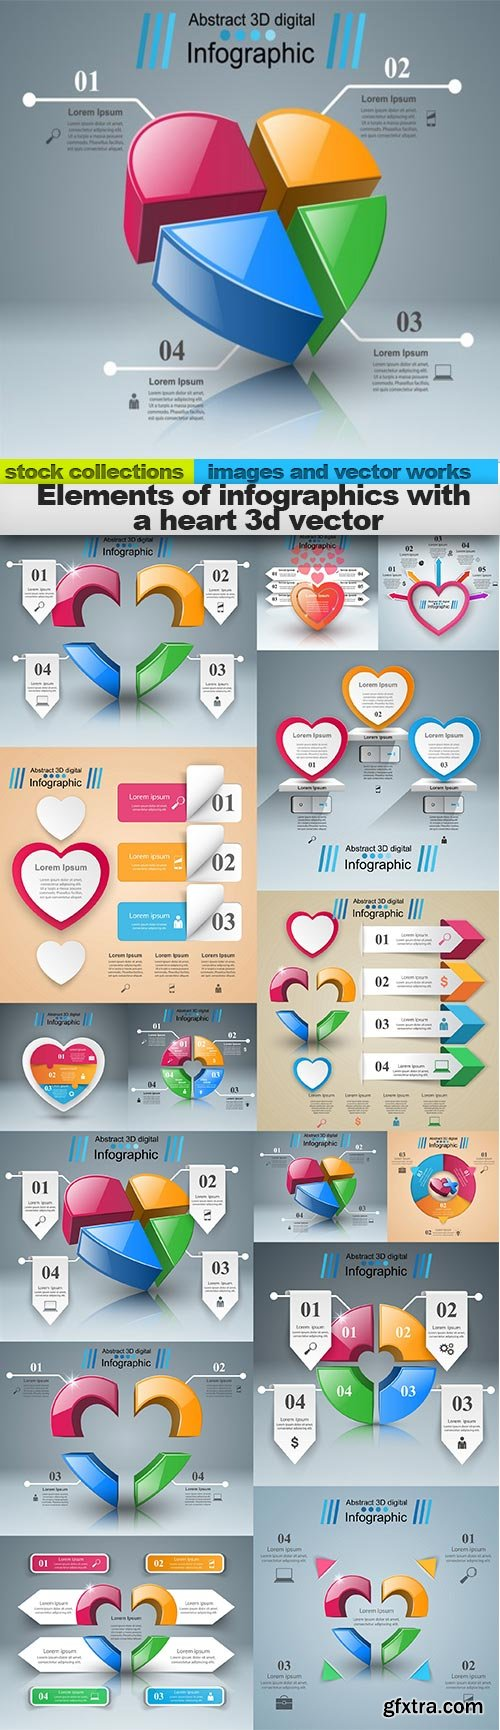 Elements of infographics with a heart 3d vector, 15 x EPS